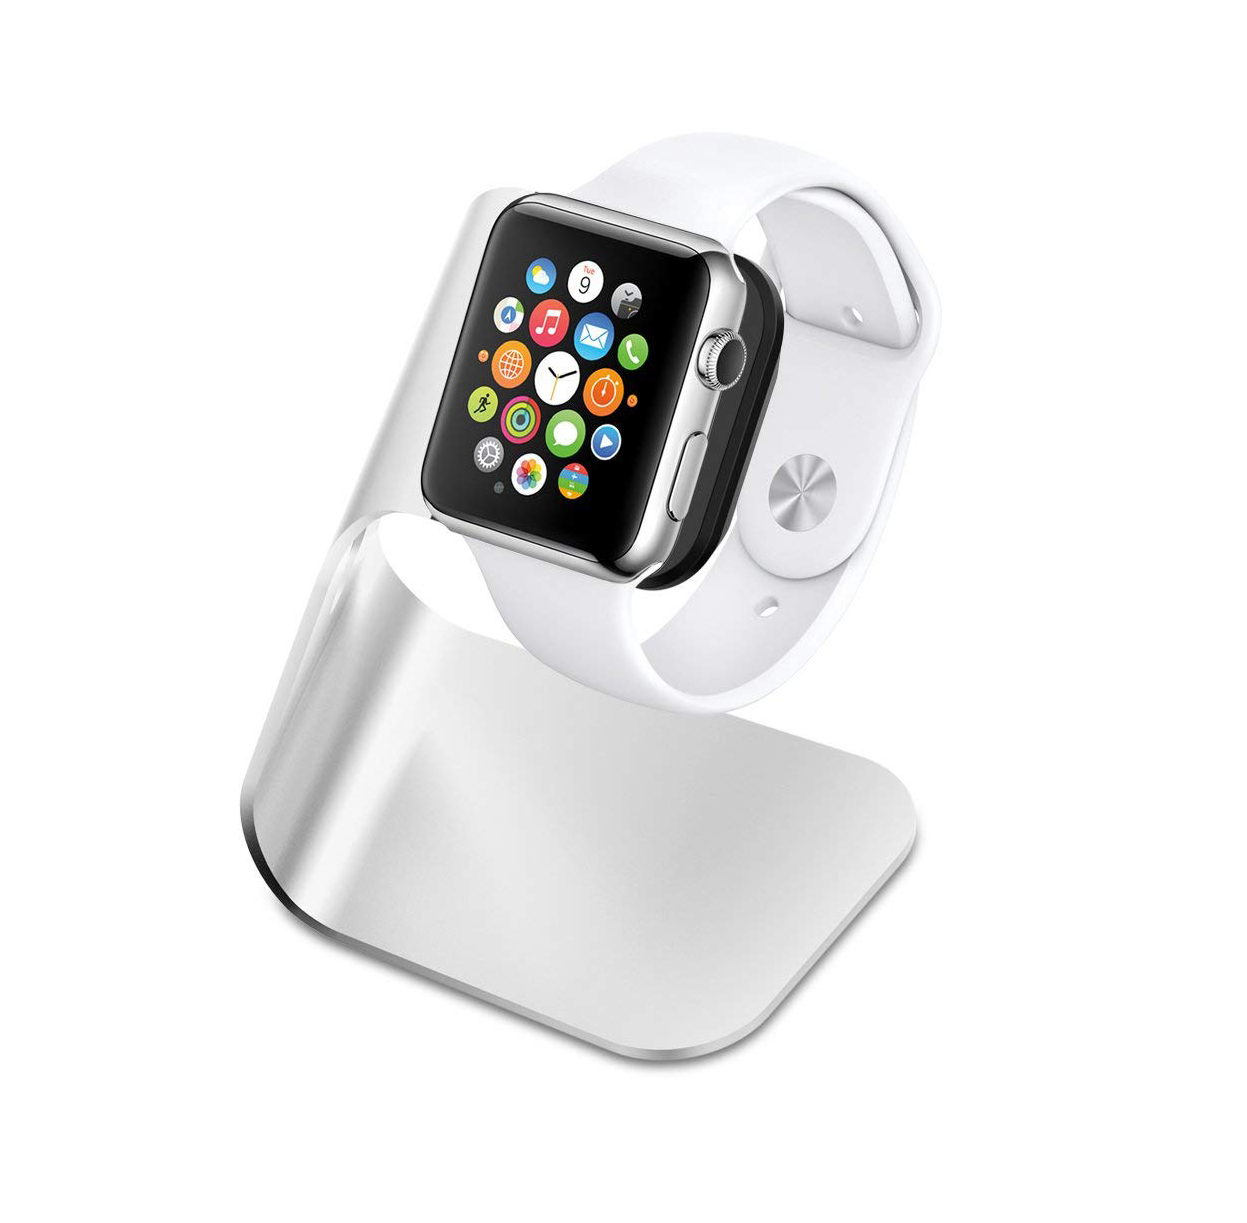 RX_1902 Birthday Gifts for Him_Apple Watch Charging Stand